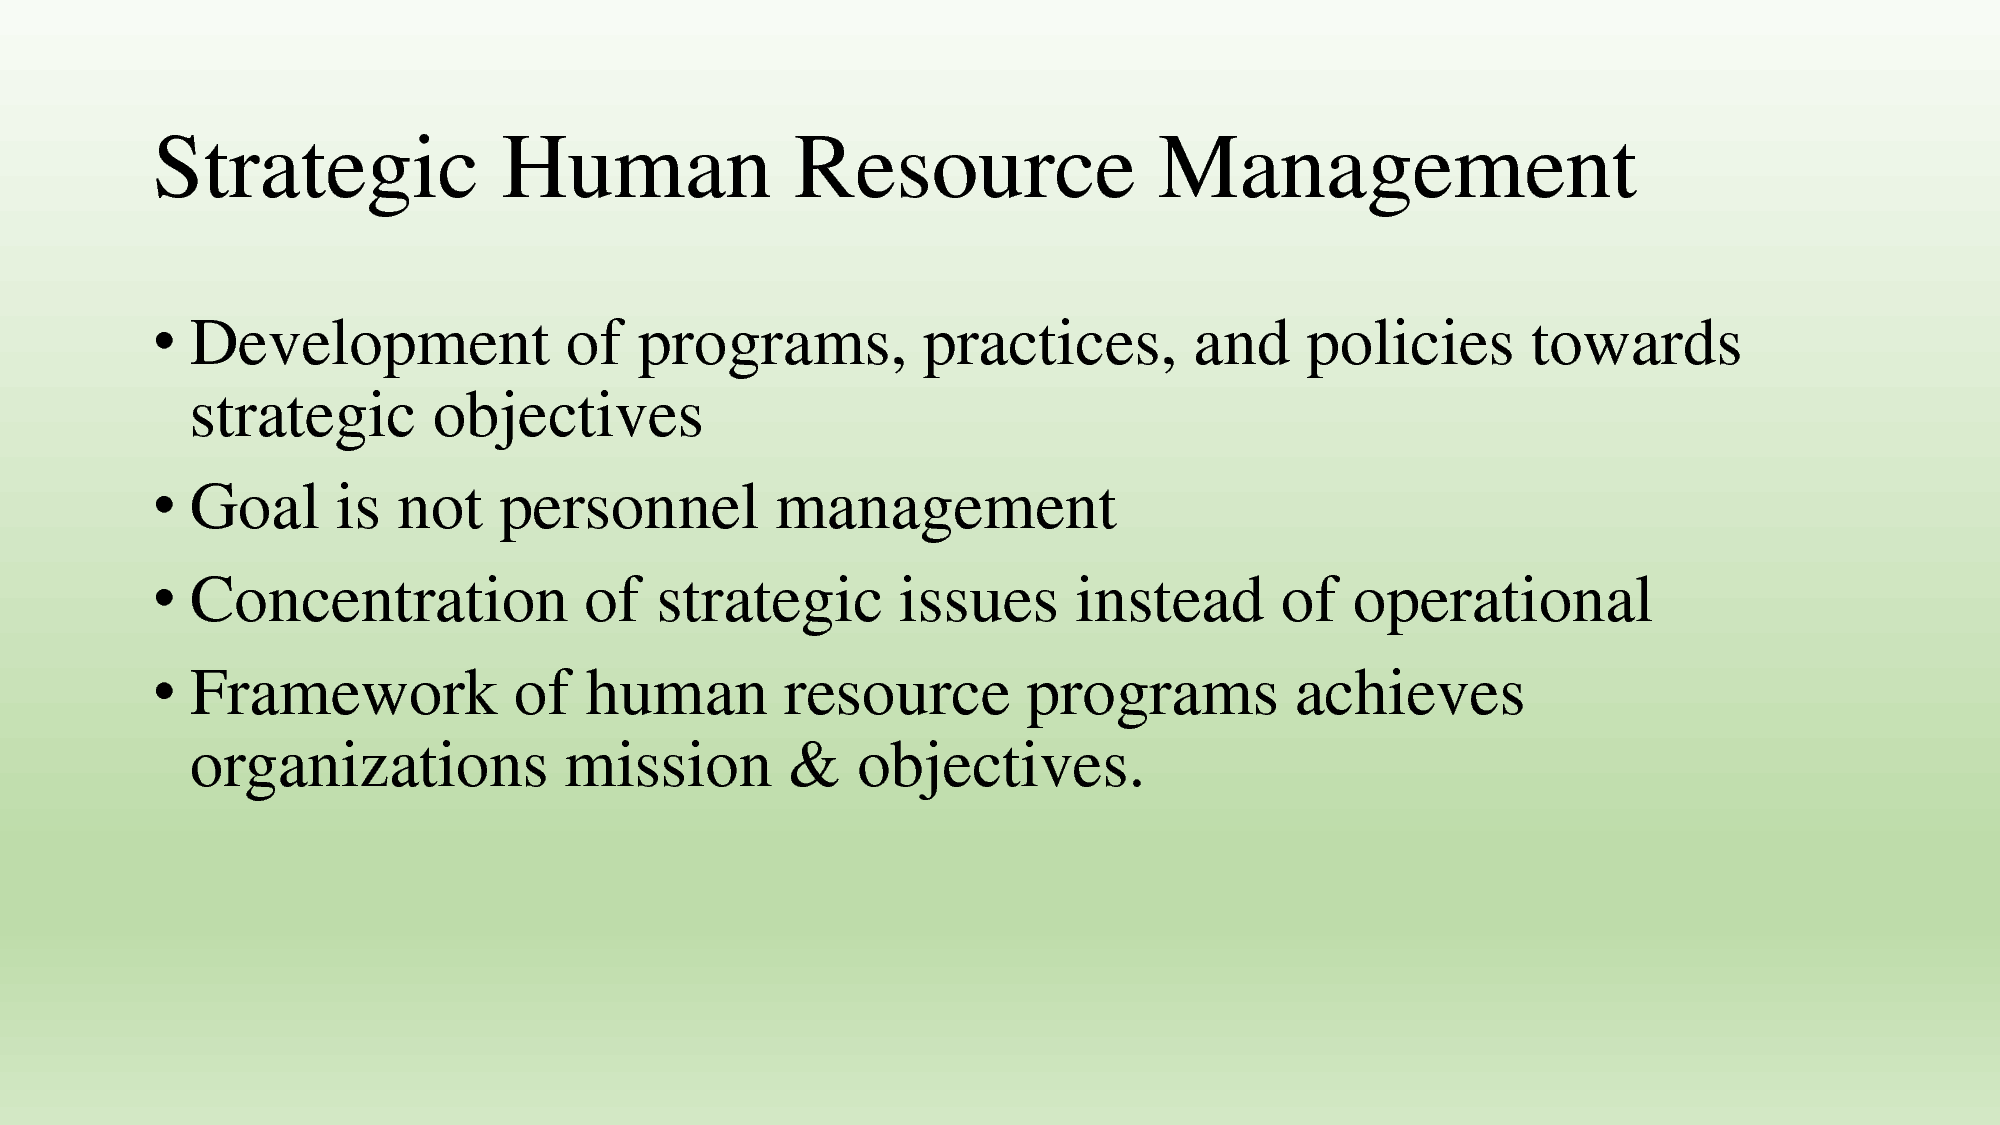 hrm case studies with solutions Human resource management (hrm) case studies jan 8, 2010 providing an introduction to human resource management (hrm), hr case studies study the essentials and theory of managing the workforce, human resource planning and development.